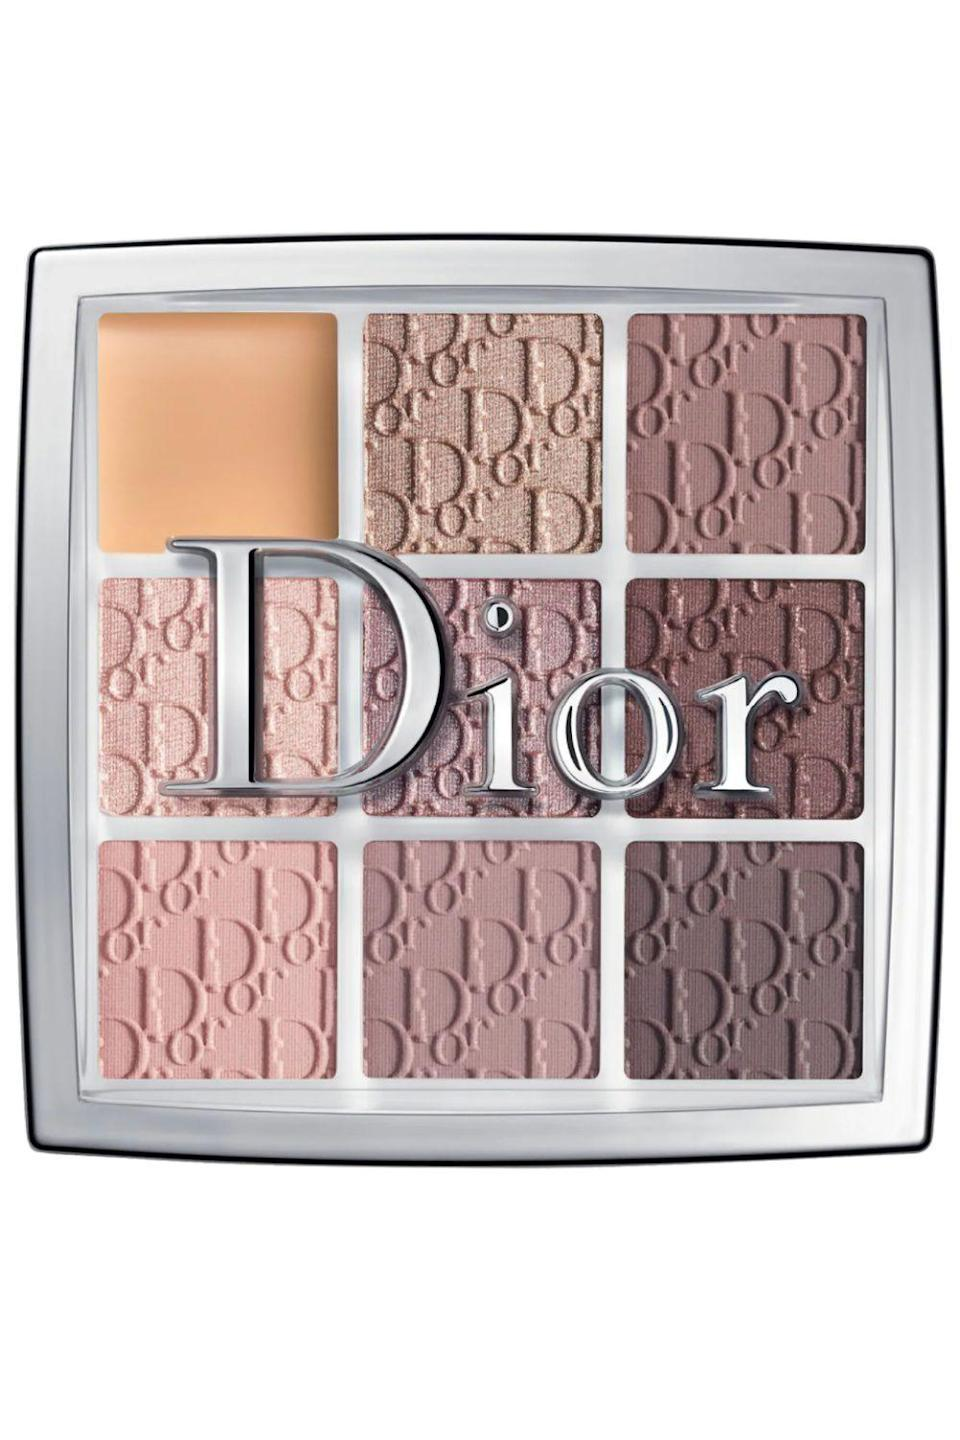 """<p><strong>Dior</strong></p><p>sephora.com</p><p><strong>$49.00</strong></p><p><a href=""""https://go.redirectingat.com?id=74968X1596630&url=https%3A%2F%2Fwww.sephora.com%2Fproduct%2Fbackstage-eyeshadow-palette-P432504&sref=https%3A%2F%2Fwww.cosmopolitan.com%2Fstyle-beauty%2Fbeauty%2Fg36596599%2Fbest-eyeshadow-palettes%2F"""" rel=""""nofollow noopener"""" target=""""_blank"""" data-ylk=""""slk:Shop Now"""" class=""""link rapid-noclick-resp"""">Shop Now</a></p><p>If you've played around with other eyeshadow palettes and discovered warmer shades of orange and gold are flat-out not for you, stick with what you know and find a palette full of basics that work with your <a href=""""https://www.cosmopolitan.com/style-beauty/beauty/advice/a5119/find-your-undertone/"""" rel=""""nofollow noopener"""" target=""""_blank"""" data-ylk=""""slk:skin undertone"""" class=""""link rapid-noclick-resp"""">skin undertone</a>, like this <strong>assortment of cool rosy shades and taupes</strong>. Bonus: This palette also comes with an <a href=""""https://www.cosmopolitan.com/style-beauty/beauty/g22842881/best-eyeshadow-primer/"""" rel=""""nofollow noopener"""" target=""""_blank"""" data-ylk=""""slk:eyeshadow primer"""" class=""""link rapid-noclick-resp"""">eyeshadow primer</a> in the top left corner that'll help your pigments stay put and prevent any creasing or smudging. We love a good two-for-one.</p>"""